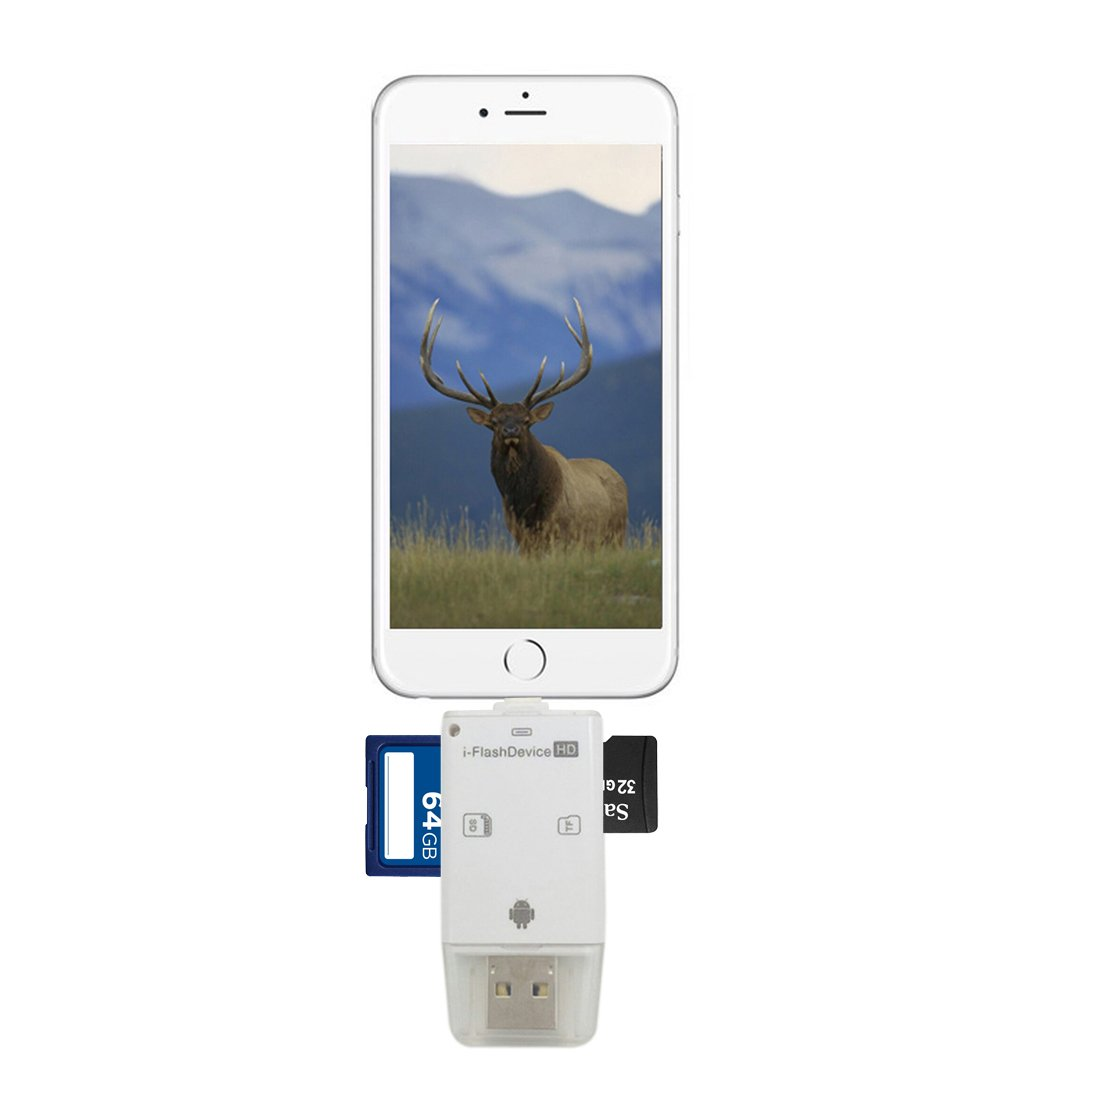 TSEAH Trail and Game Camera Viewer for Apple iPhone, iPad, iPod | Lightning connector with Extender | Reads SD, SDHC and Micro SD Cards (White) by TSEAH (Image #1)